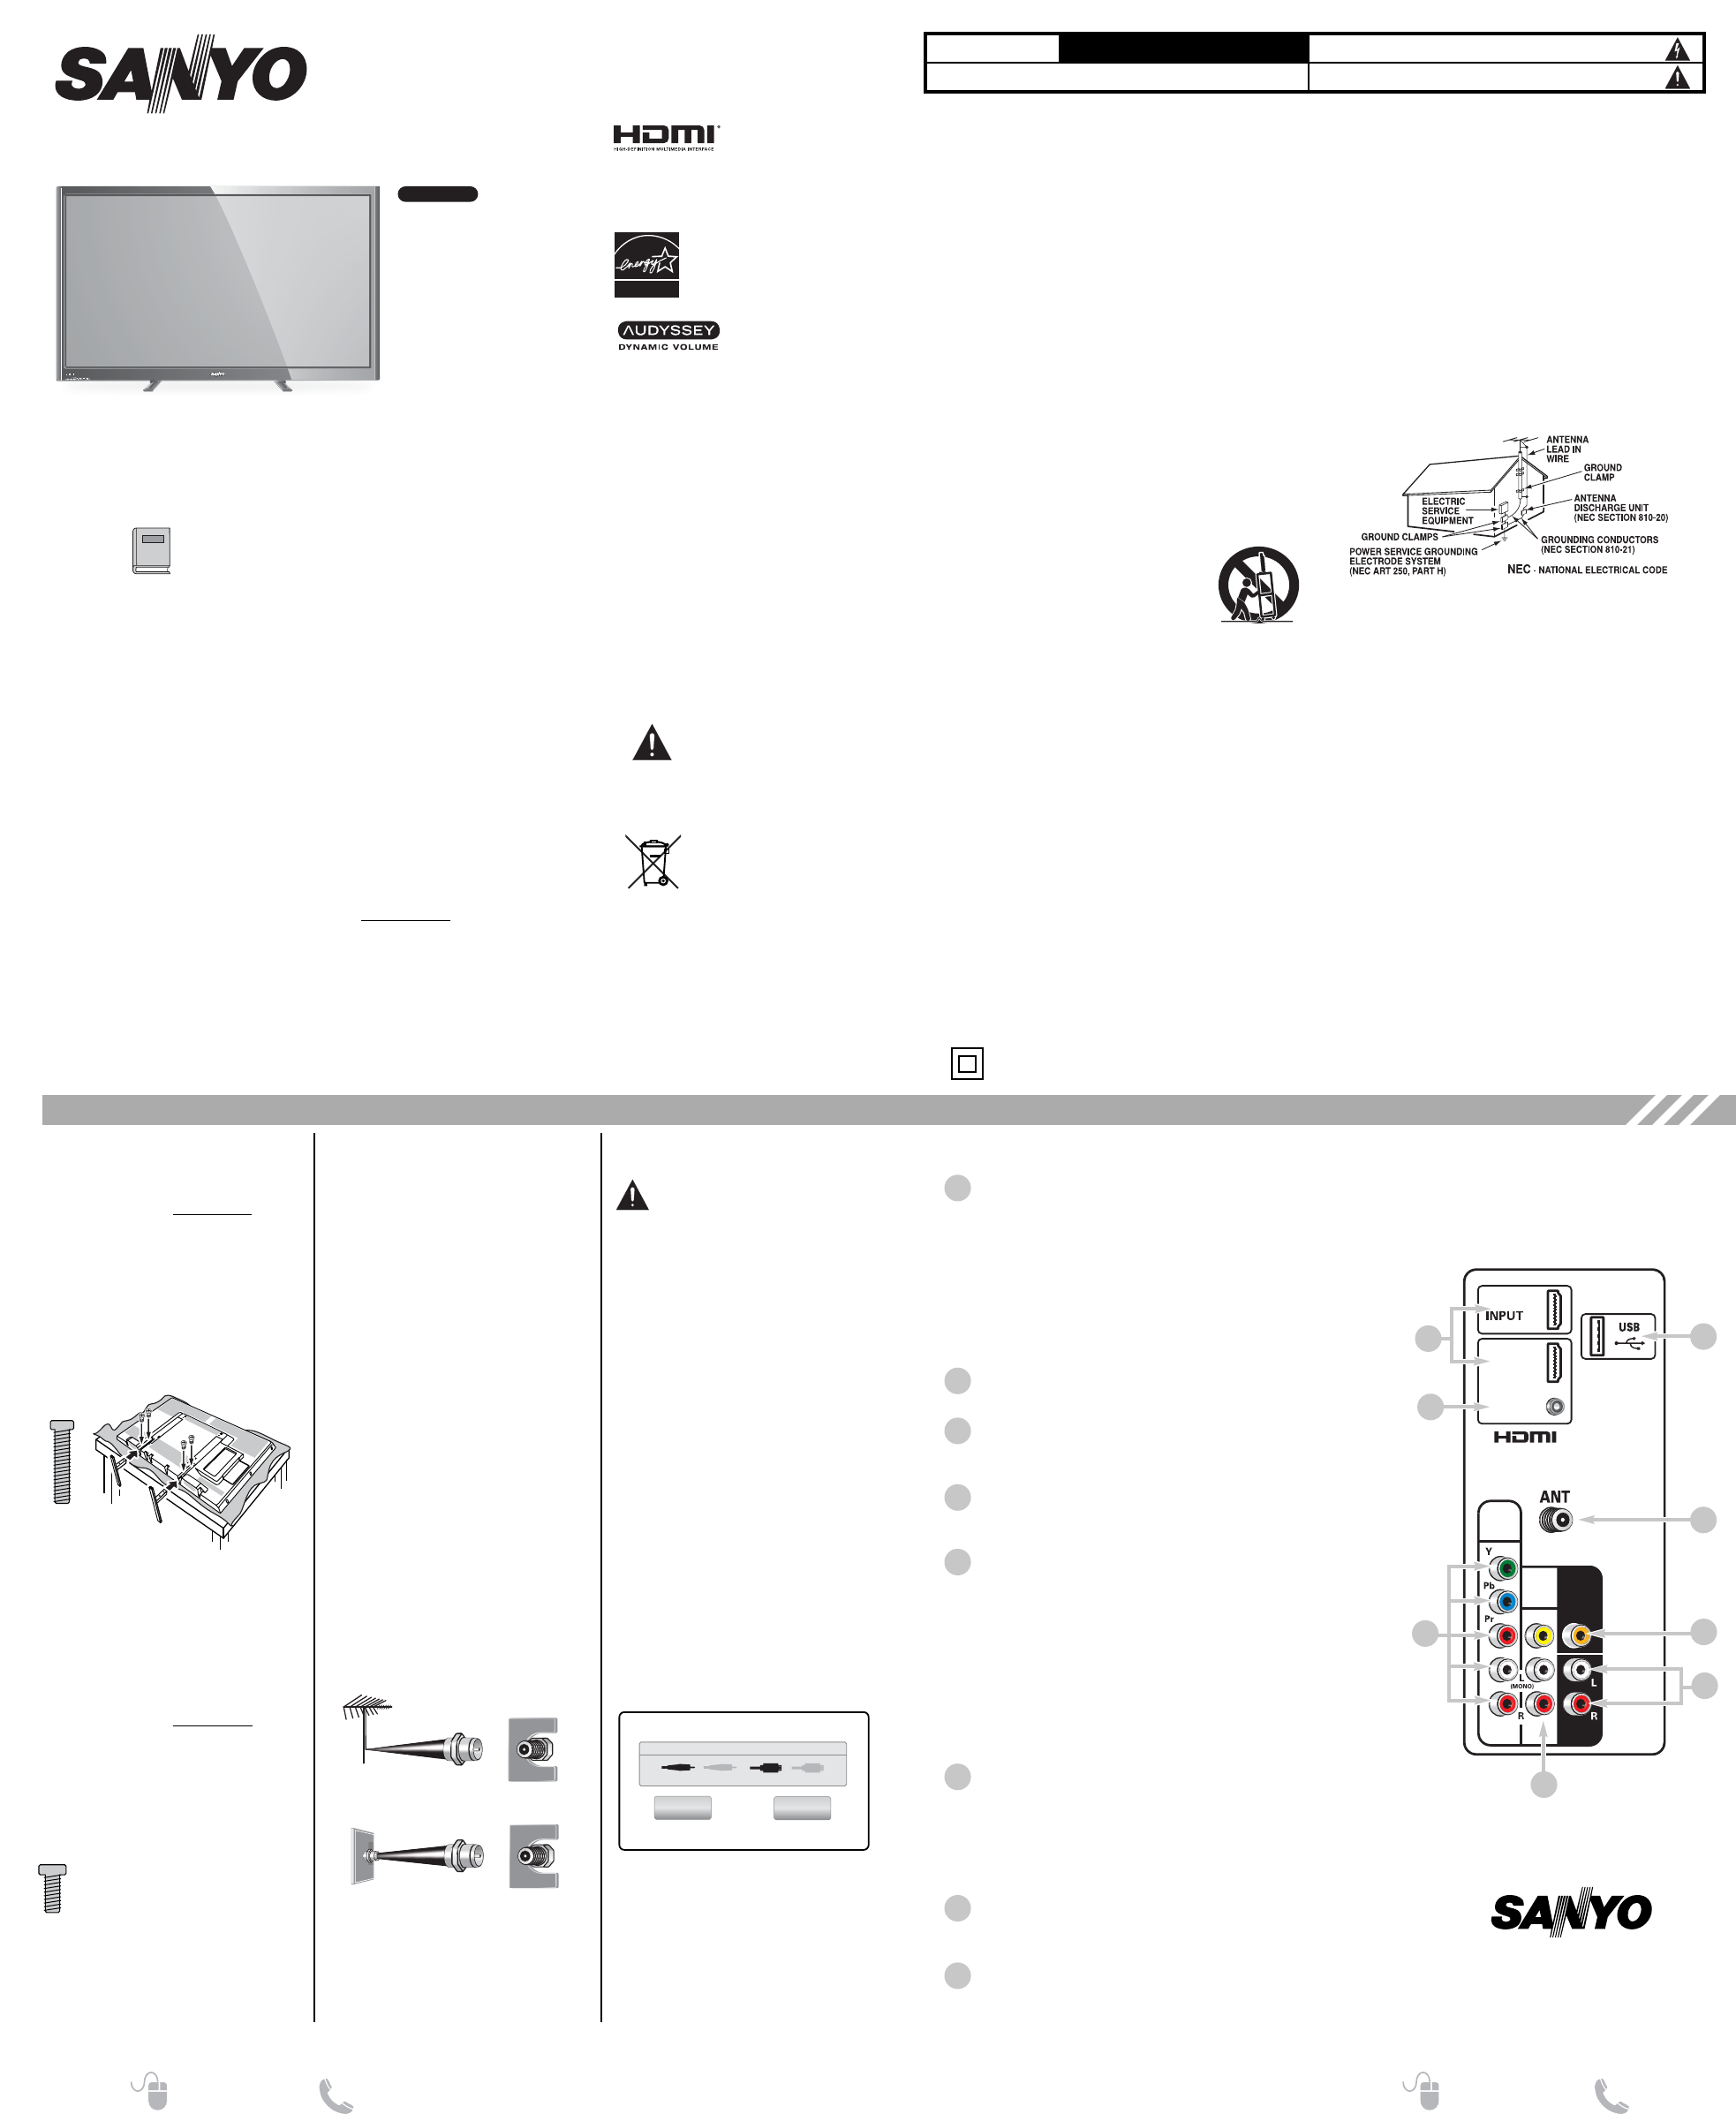 Sanyo Flat Panel Television DP50842 User Guide | ManualsOnline.com